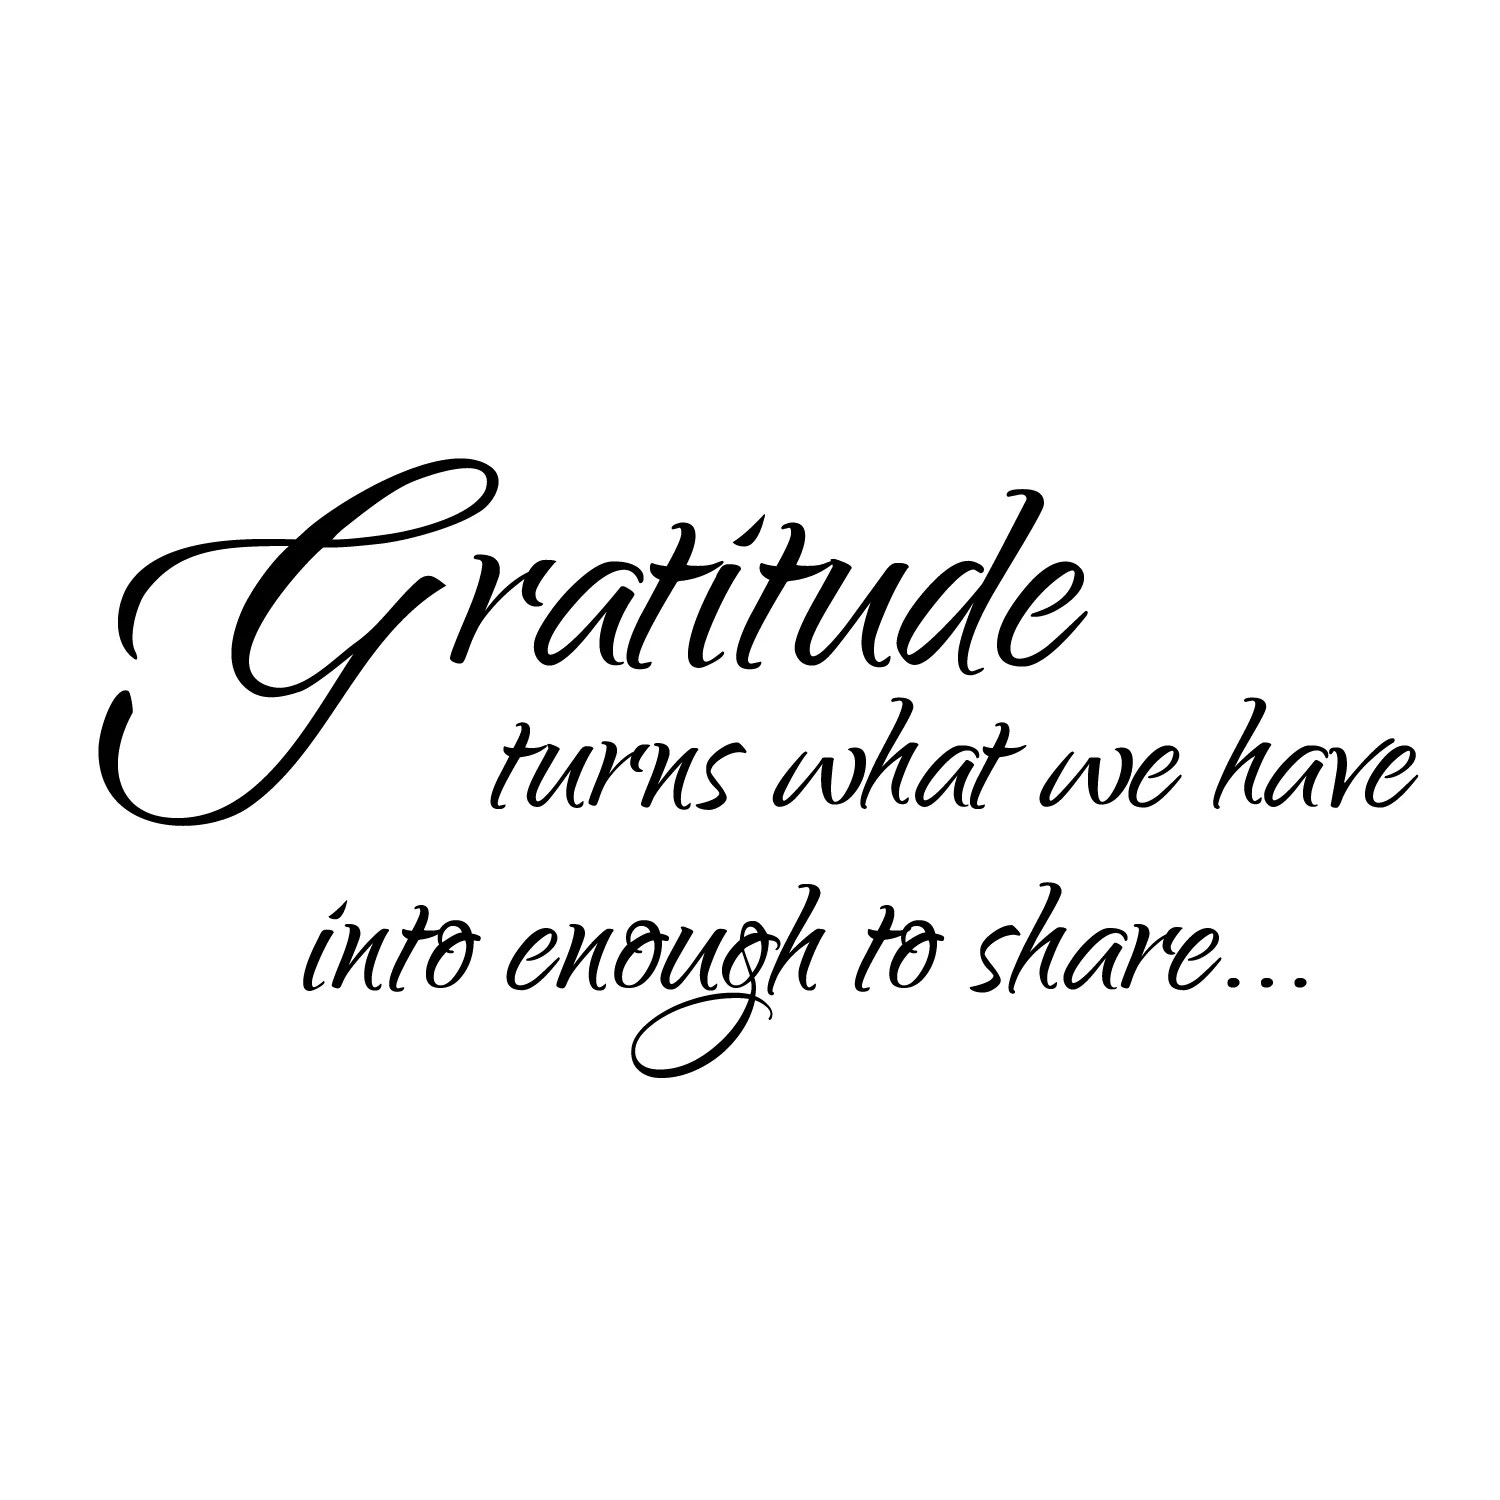 Firesidehome Gratitude Turns What We Have Into Enough To